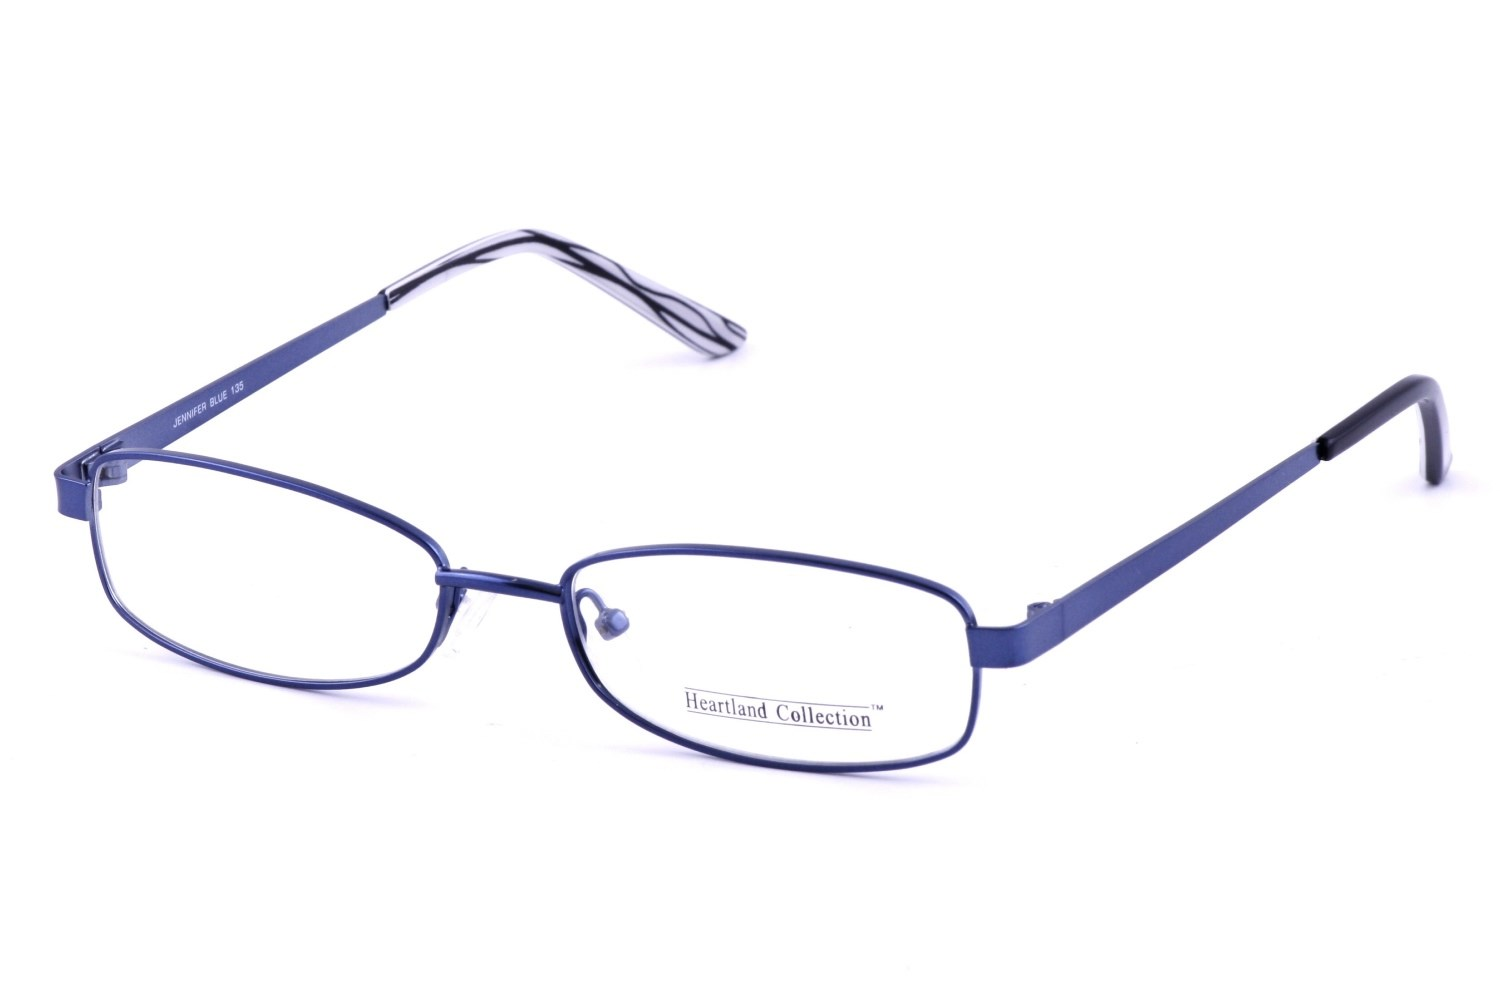 Heartland Jennifer Prescription Eyeglasses Frames